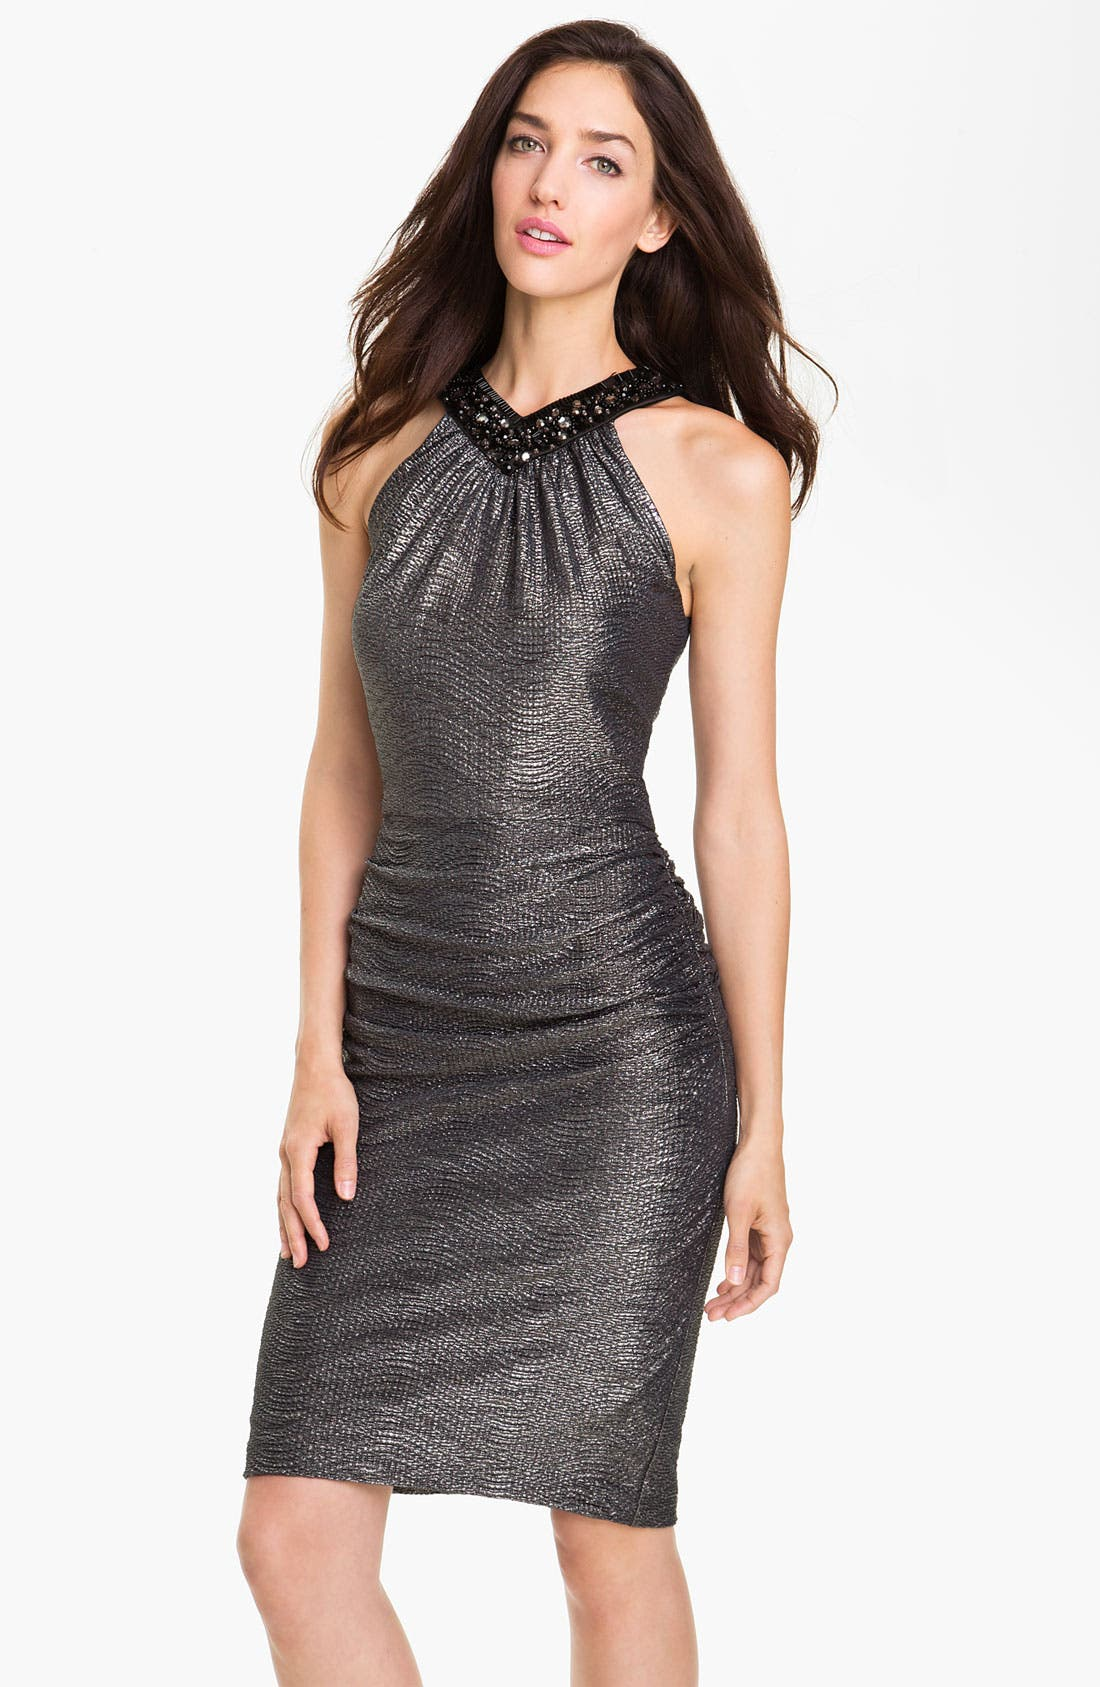 Alternate Image 1 Selected - Maggy London Beaded Neck Metallic Sheath Dress (Petite)